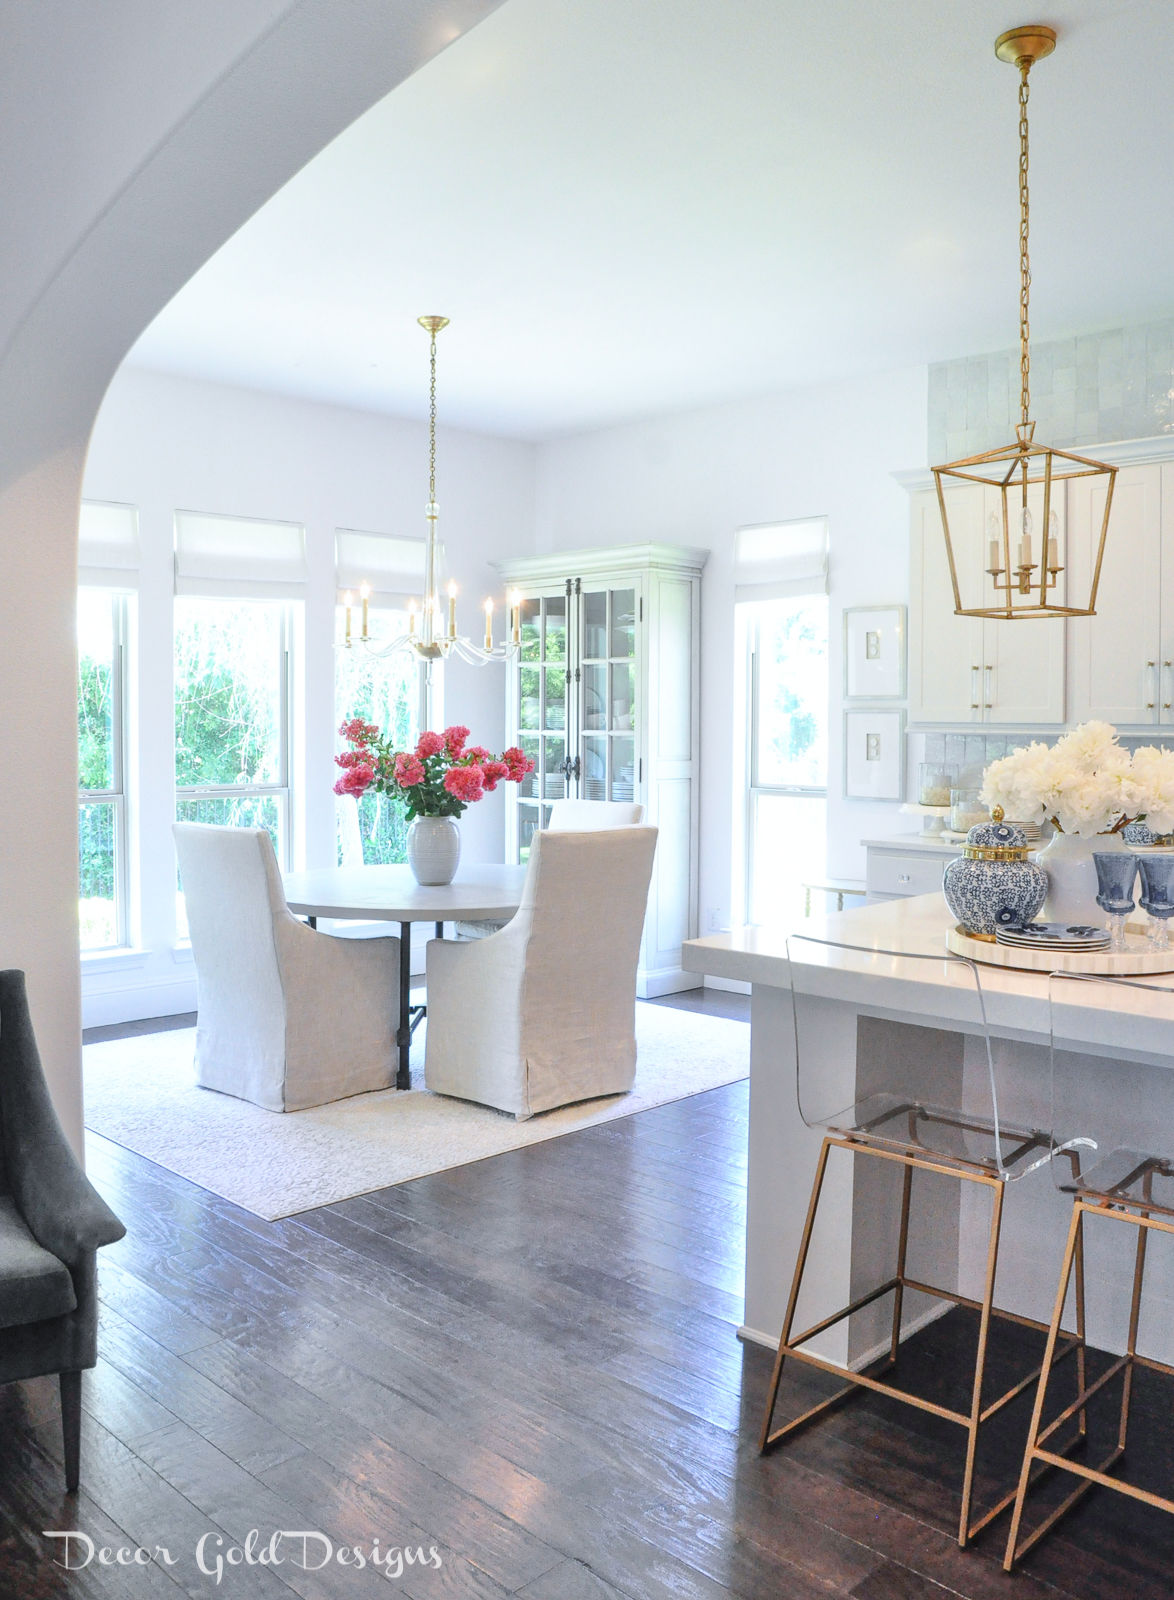 Summer home tour bright white kitchen breakfast nook